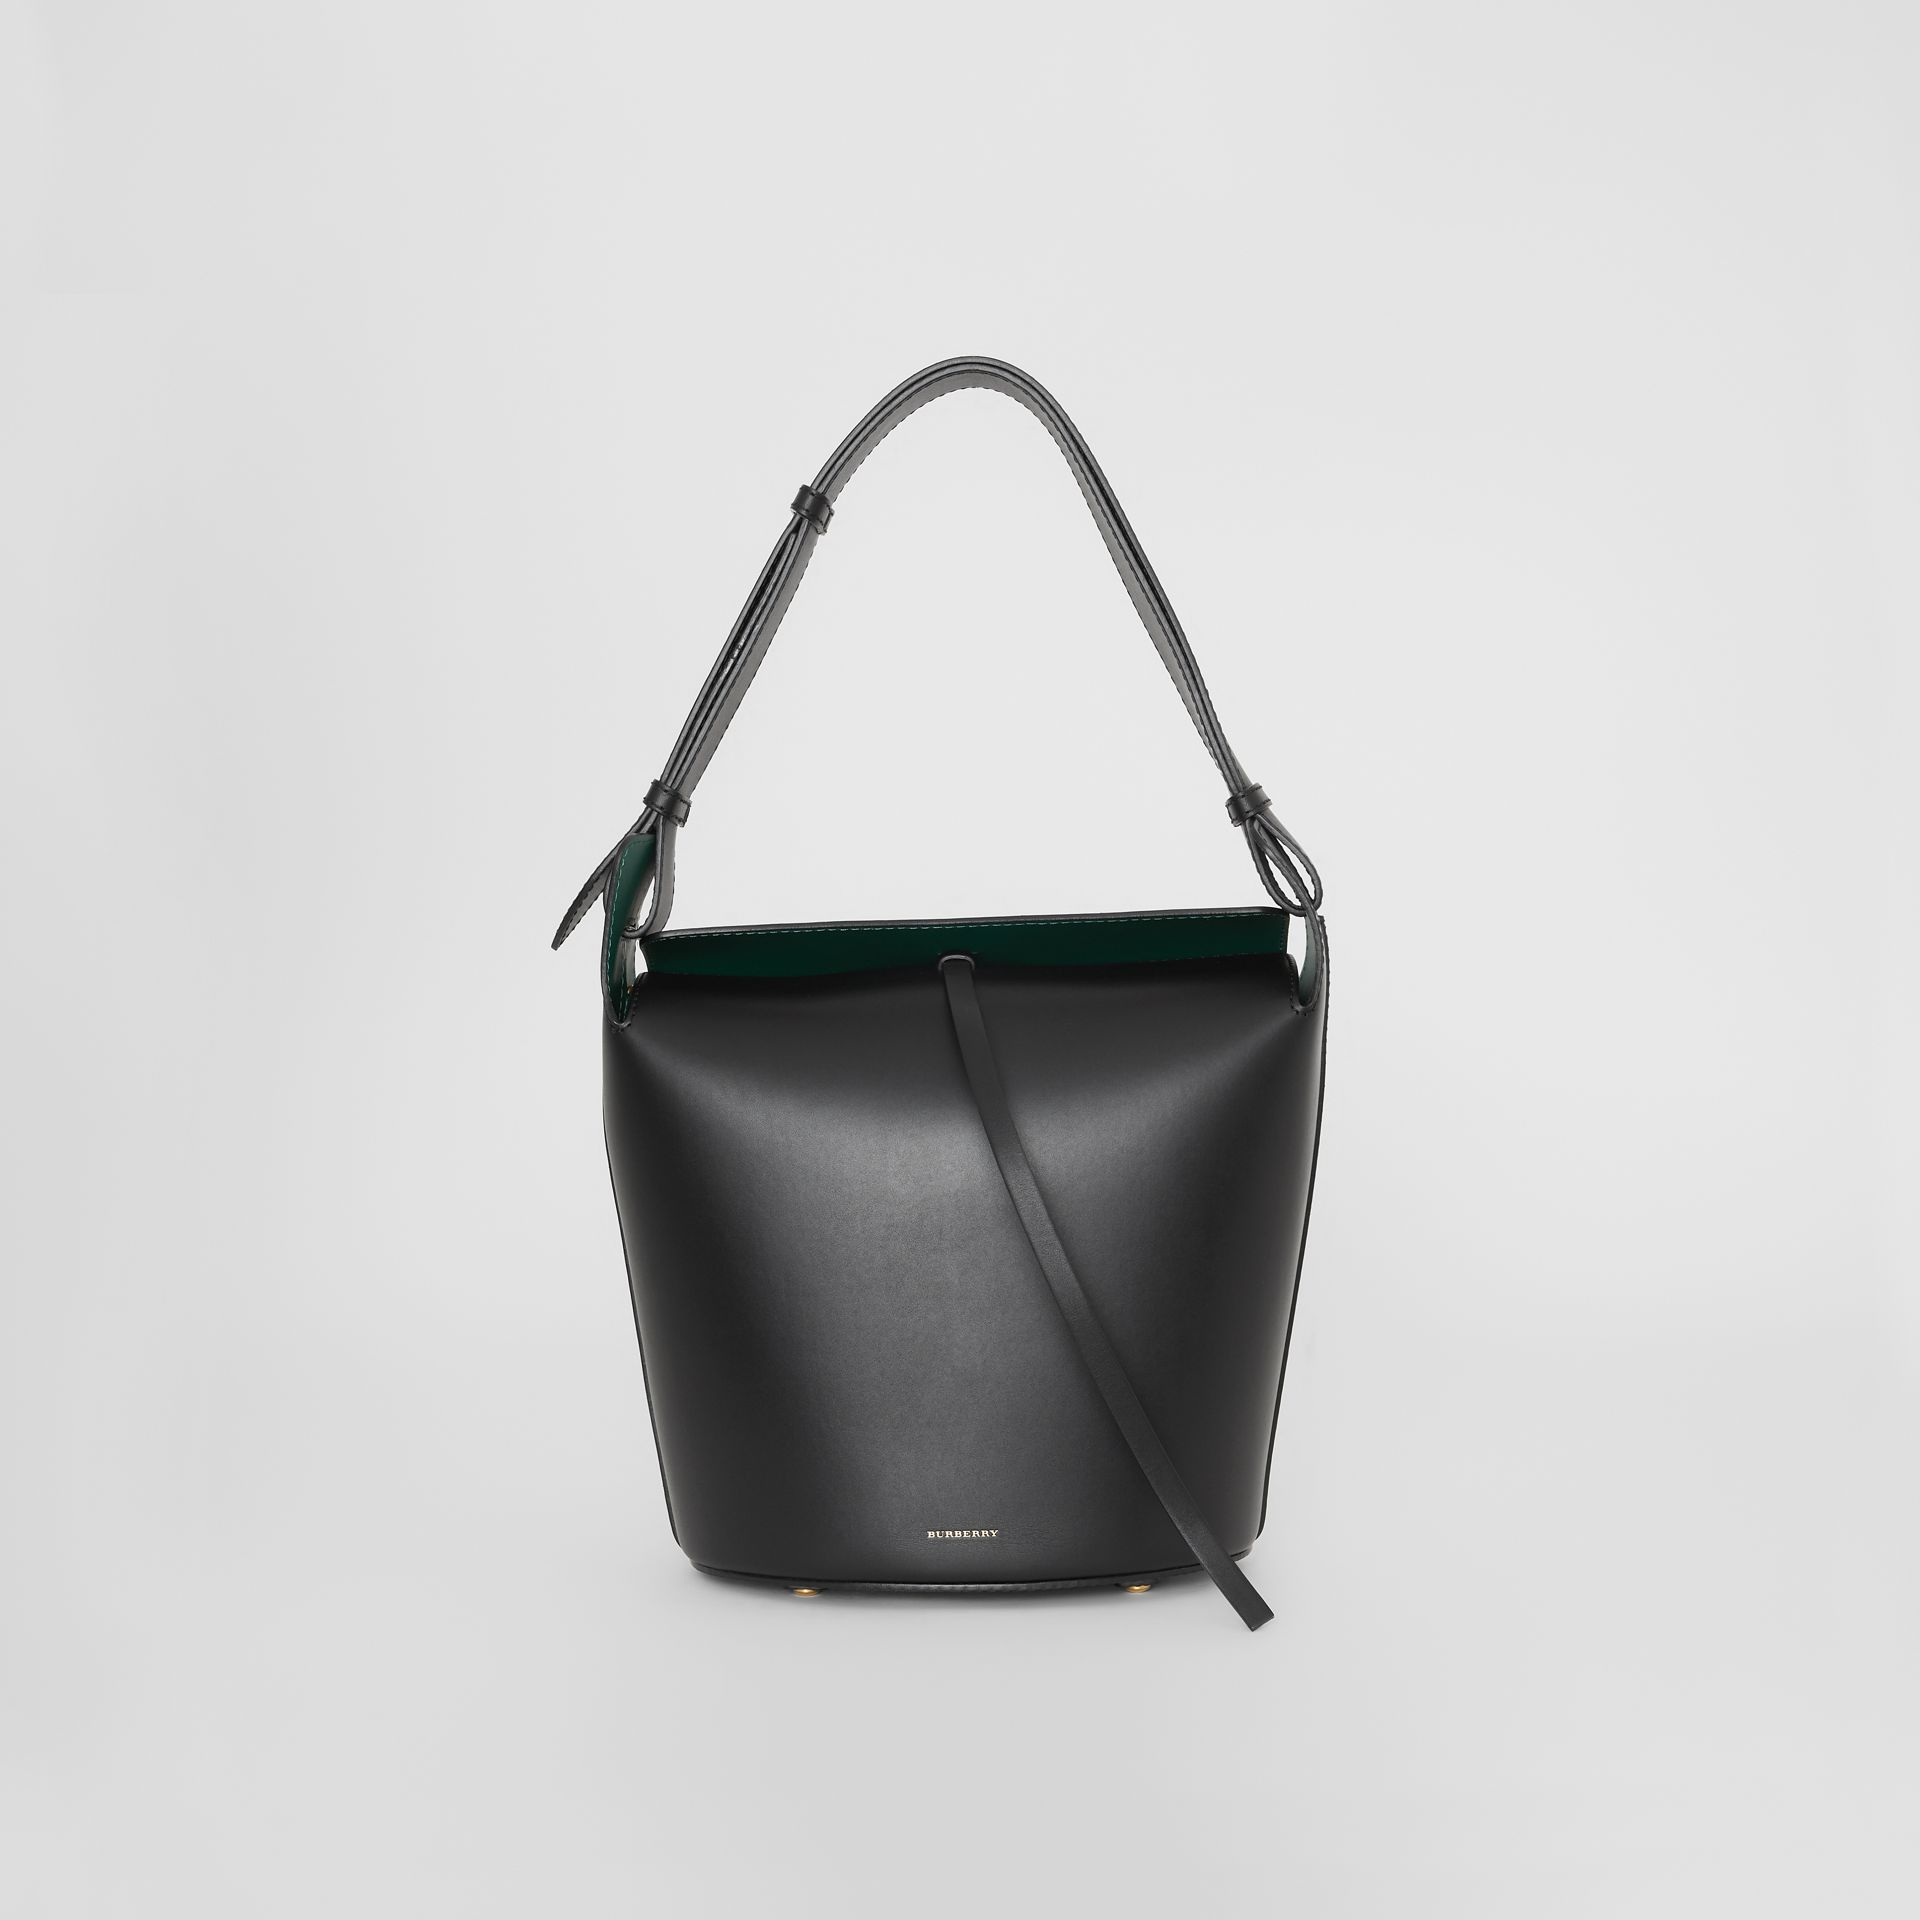 Sac The Bucket moyen en cuir (Noir) - Femme | Burberry Canada - photo de la galerie 0